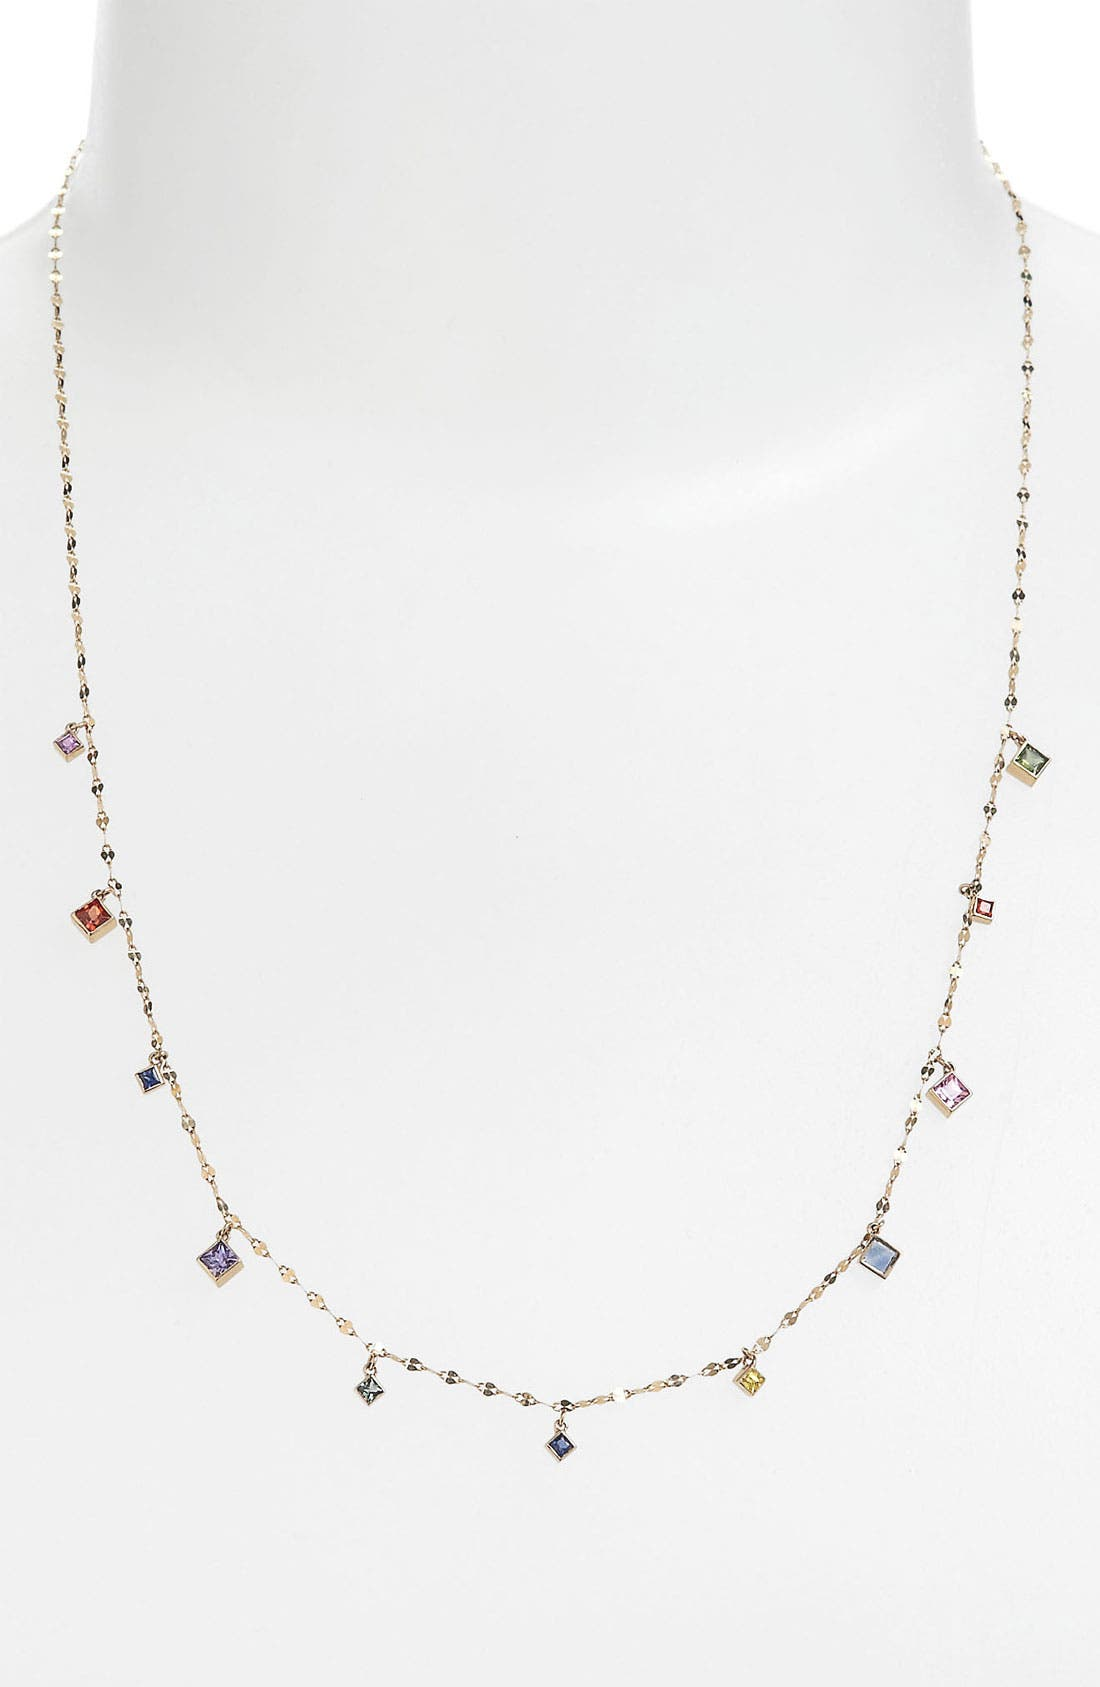 Alternate Image 1 Selected - Lana Jewelry 'Gypsy' Sapphire Necklace